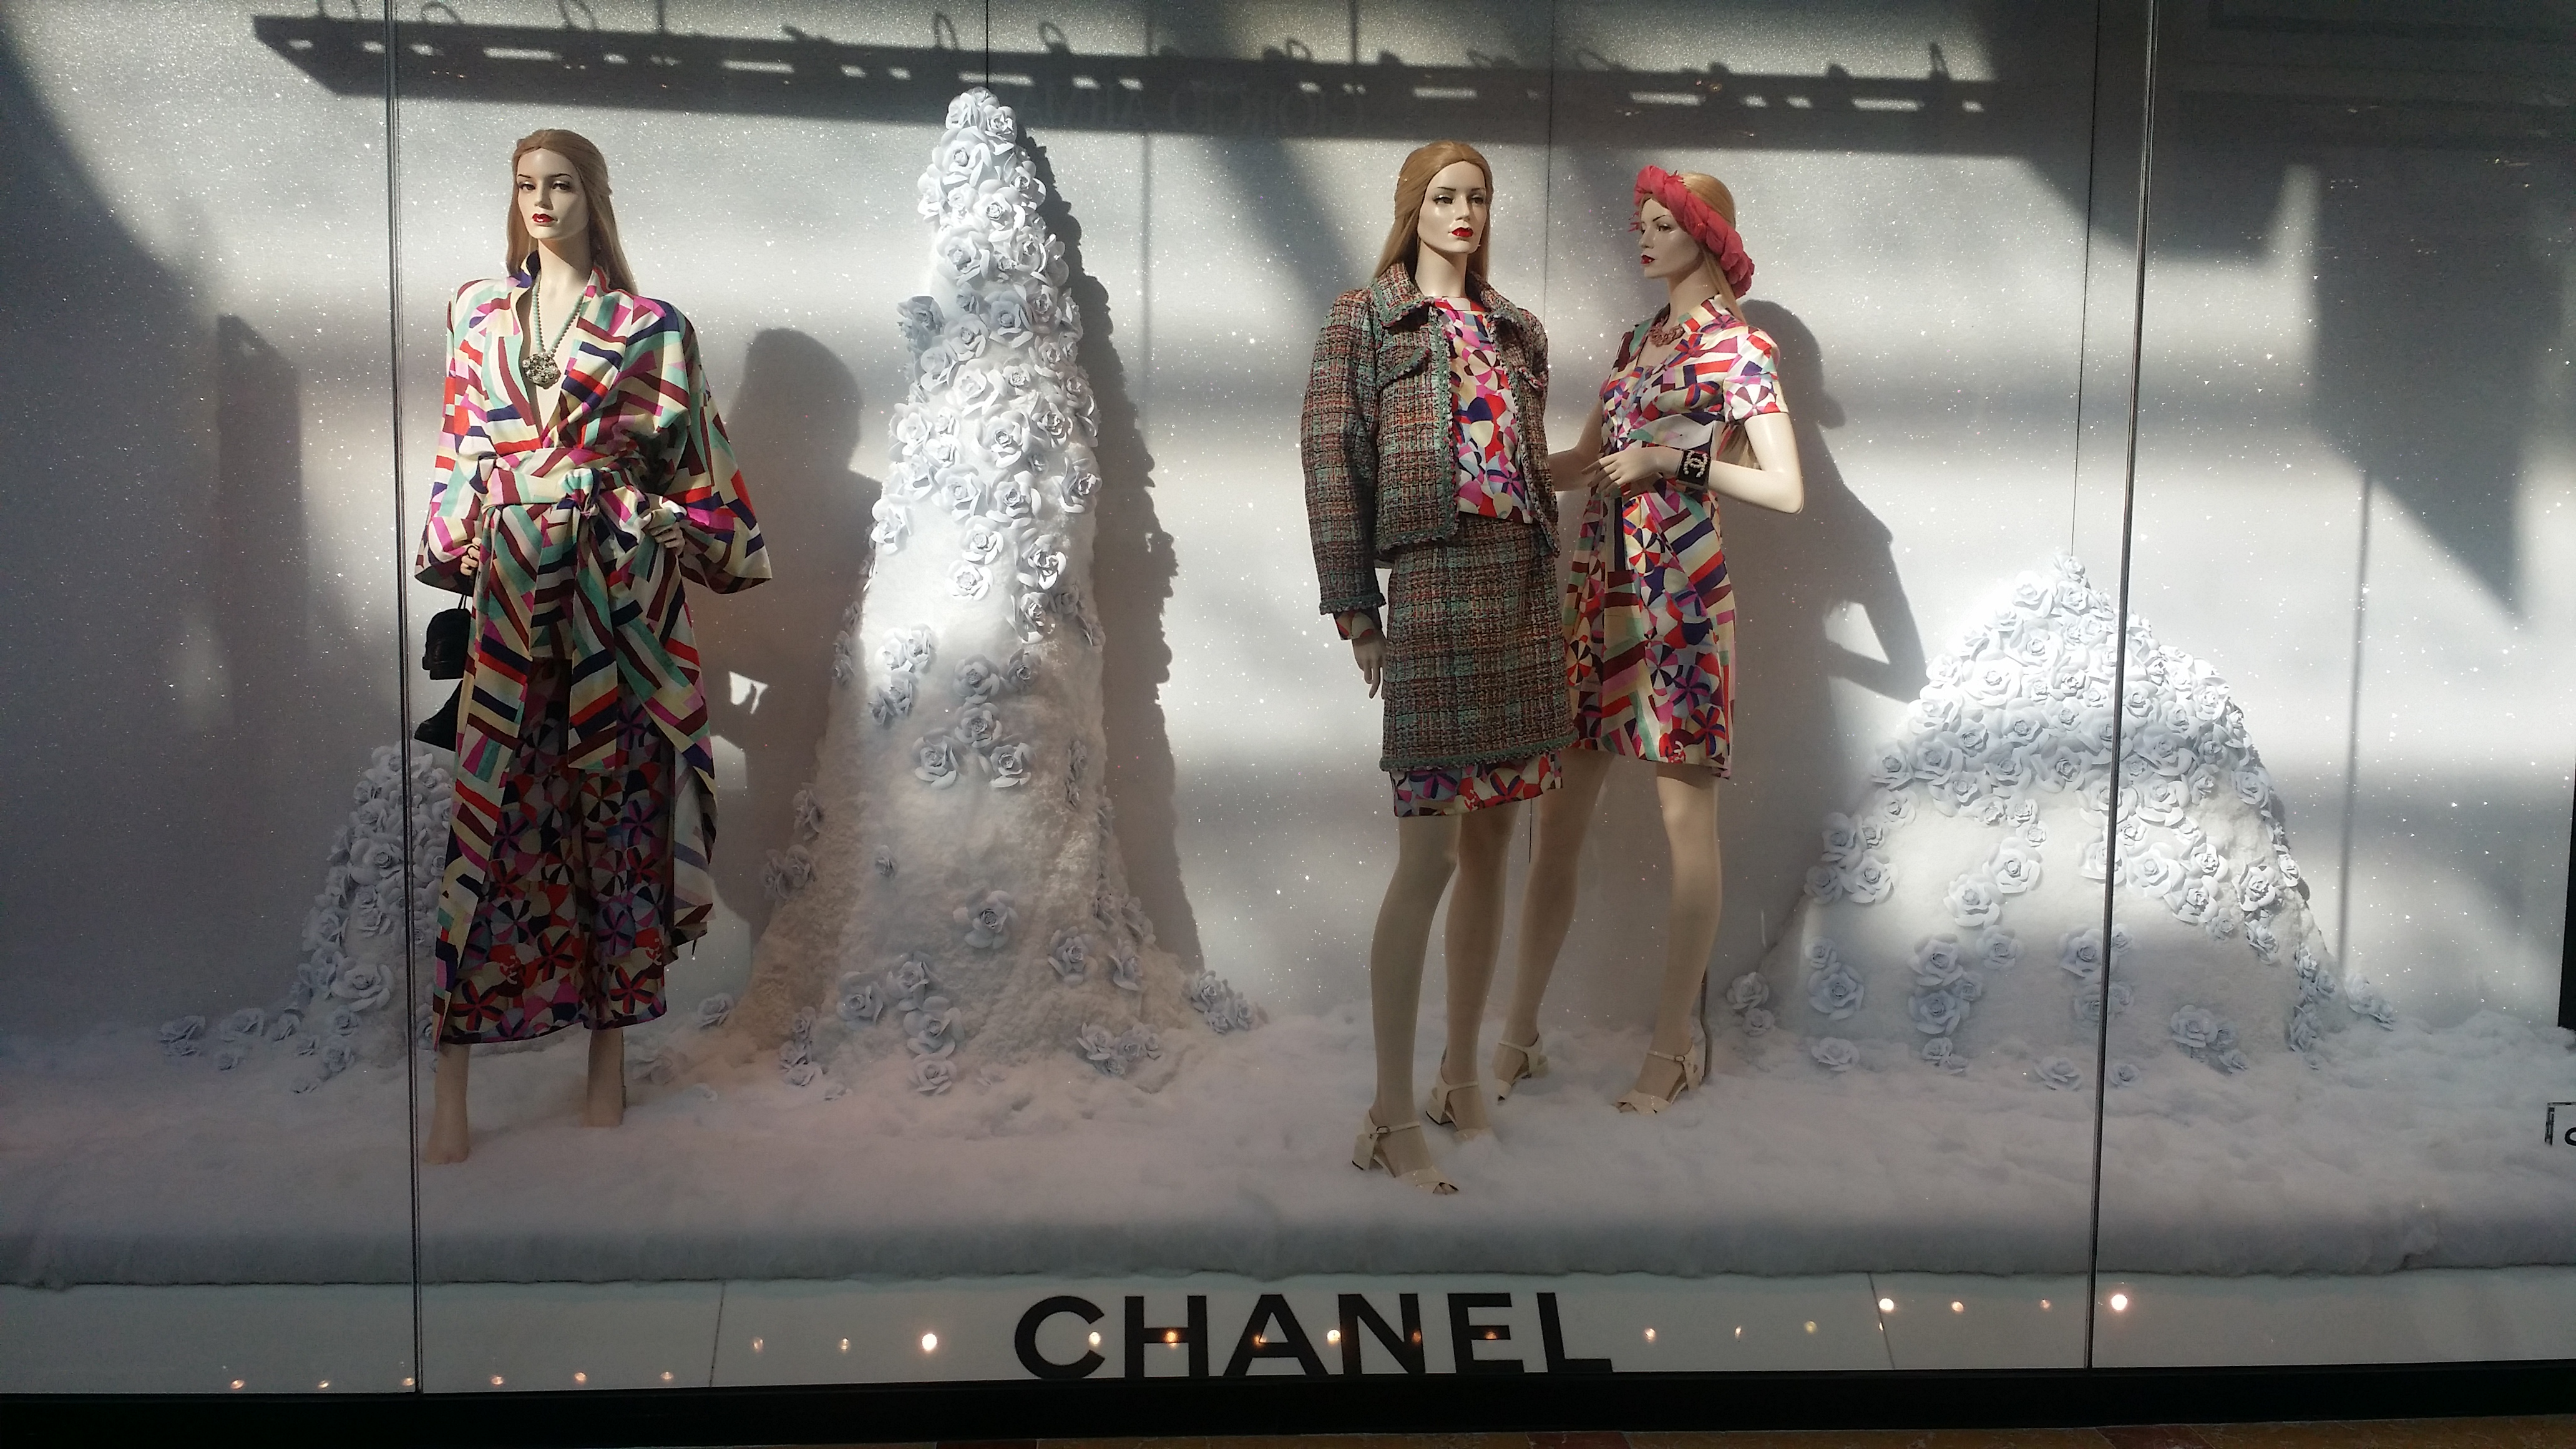 Chanel window at the Bellagio Hotel & chanel window display | Girl Who Would be KING